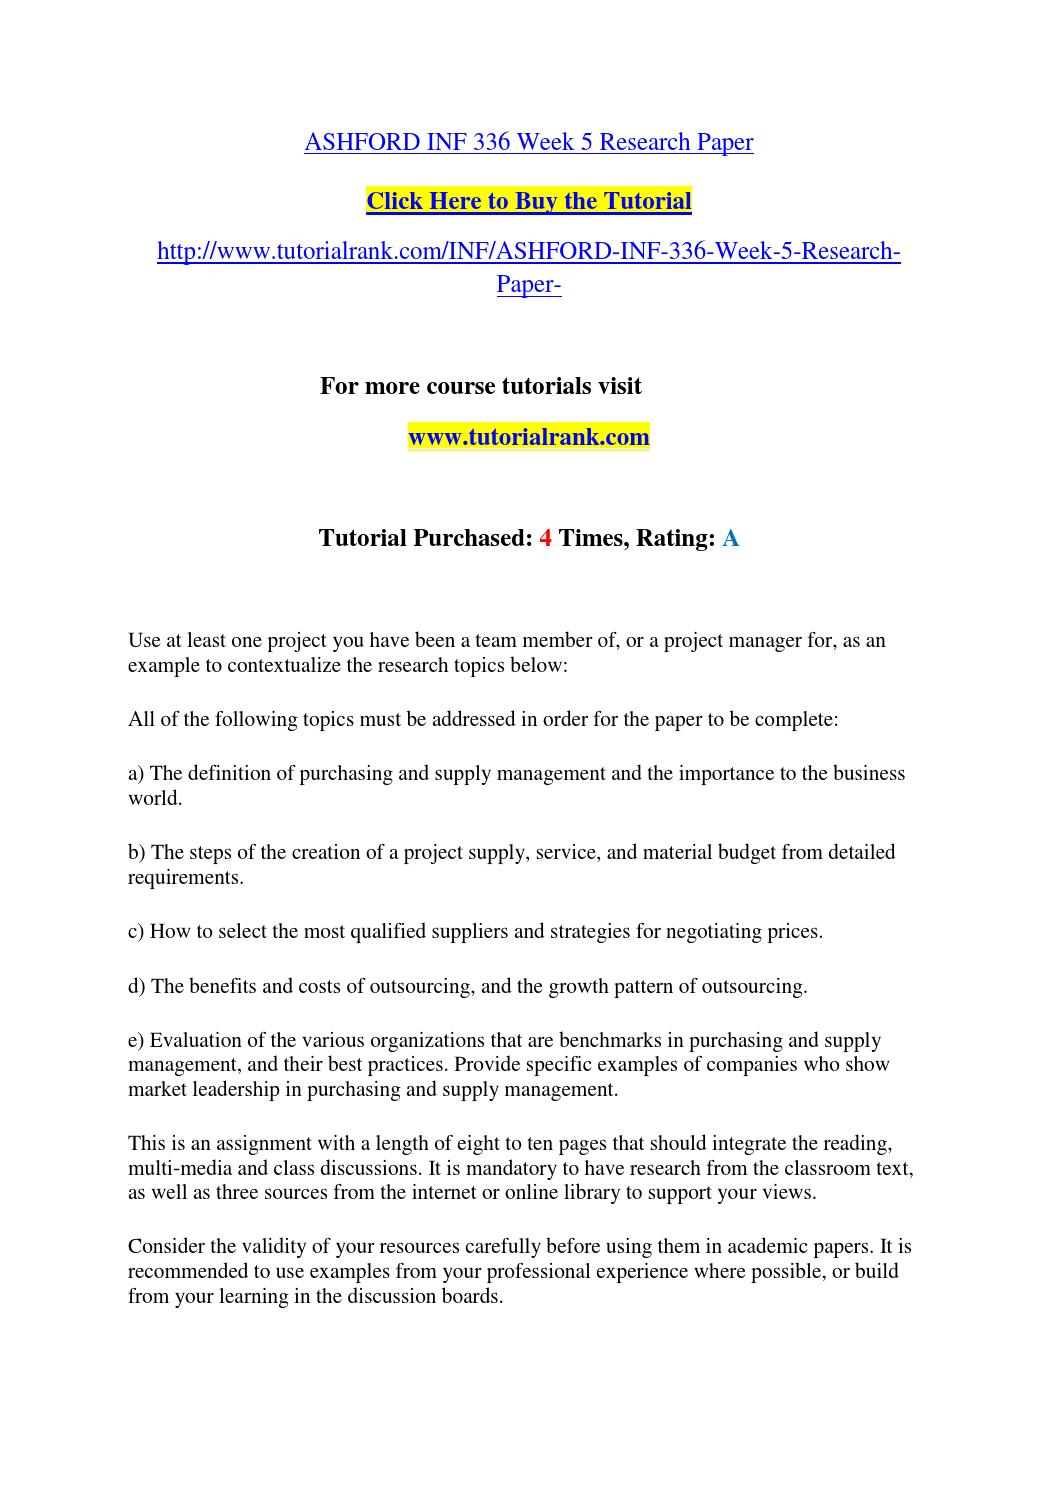 018 Research Paper Business Management Topics For Page 1 Unusual Pdf Techniques Full